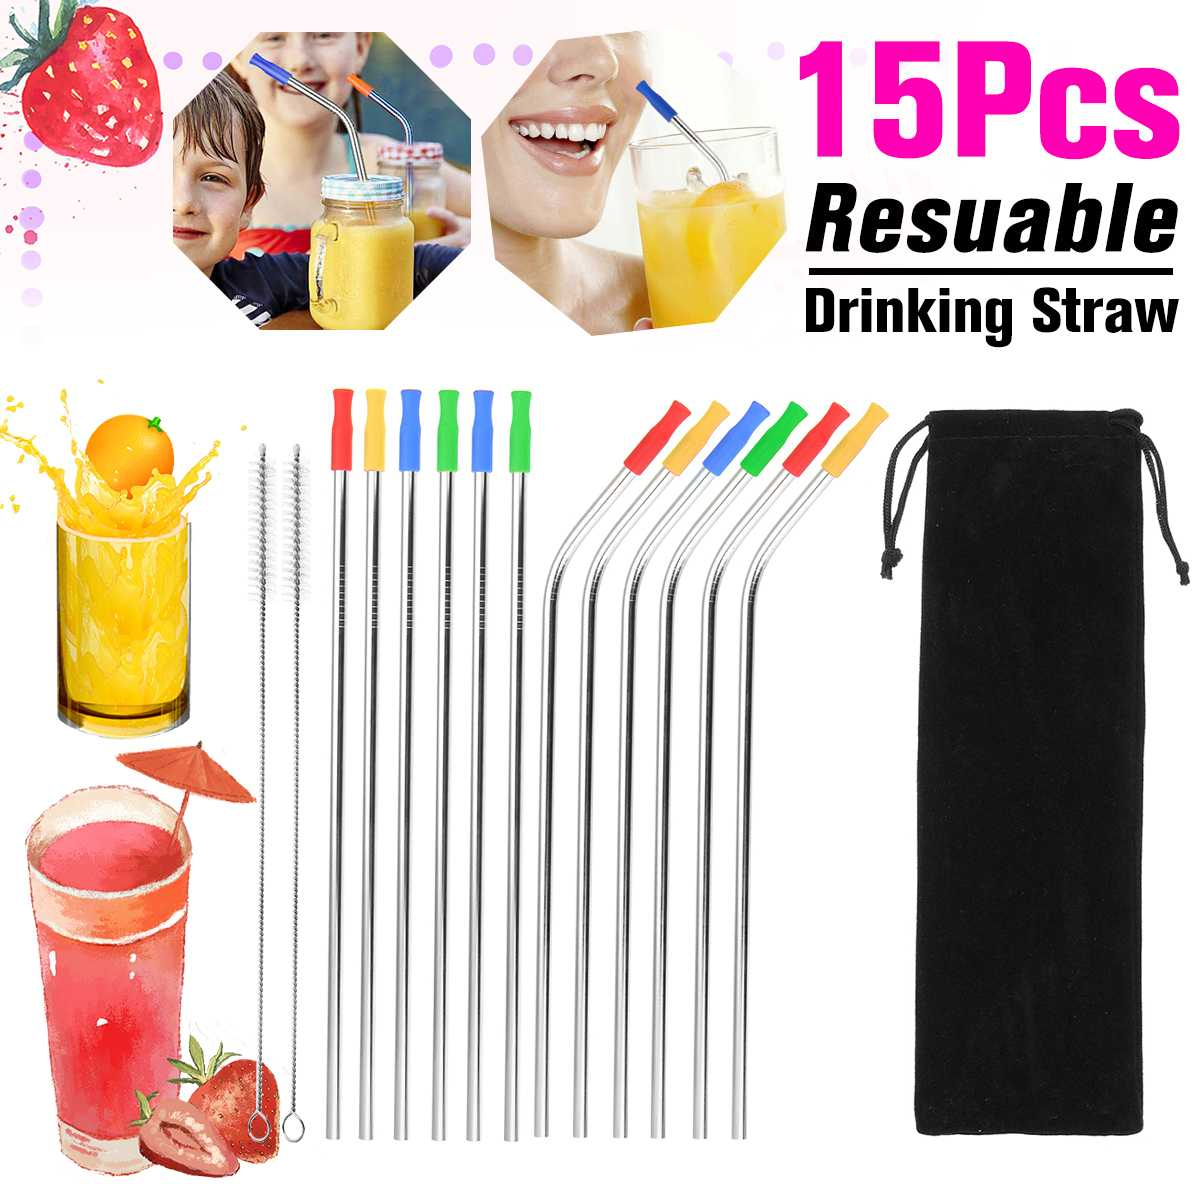 Reusable Drinking Straw Metal Stainless Steel Straws Straight Bend Eco Friendly Straw w/Silicone Tips Brush Home Bar Accessories